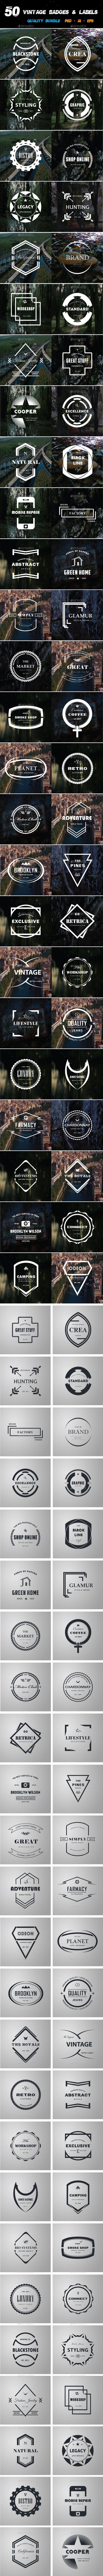 10 best Email Invoice Design Concepts images on Pinterest | Invoice ...